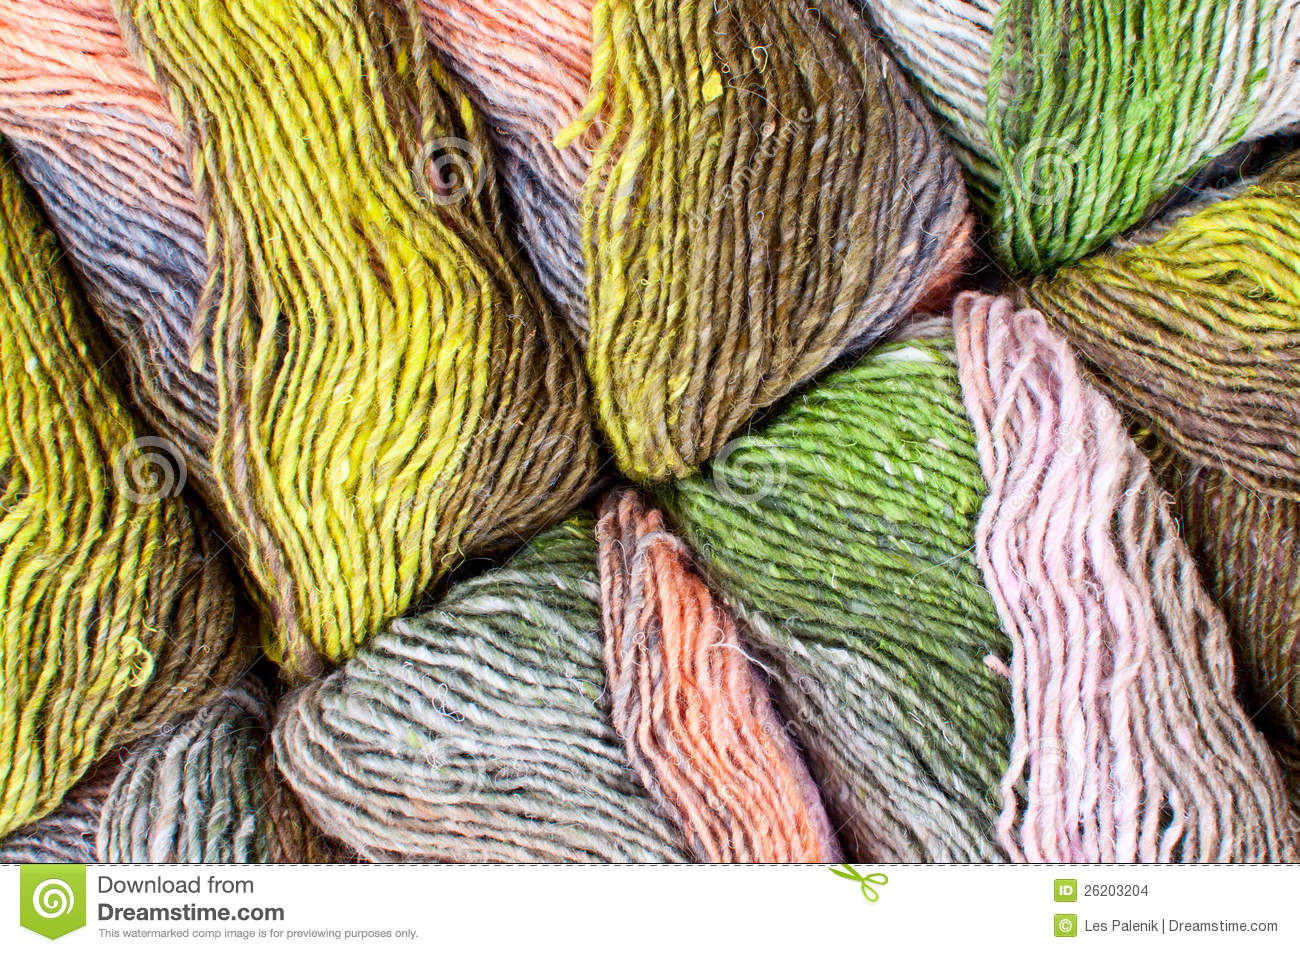 Colorful Knitting Yarn - Pattern/ Background Stock Images - Image: 26203204